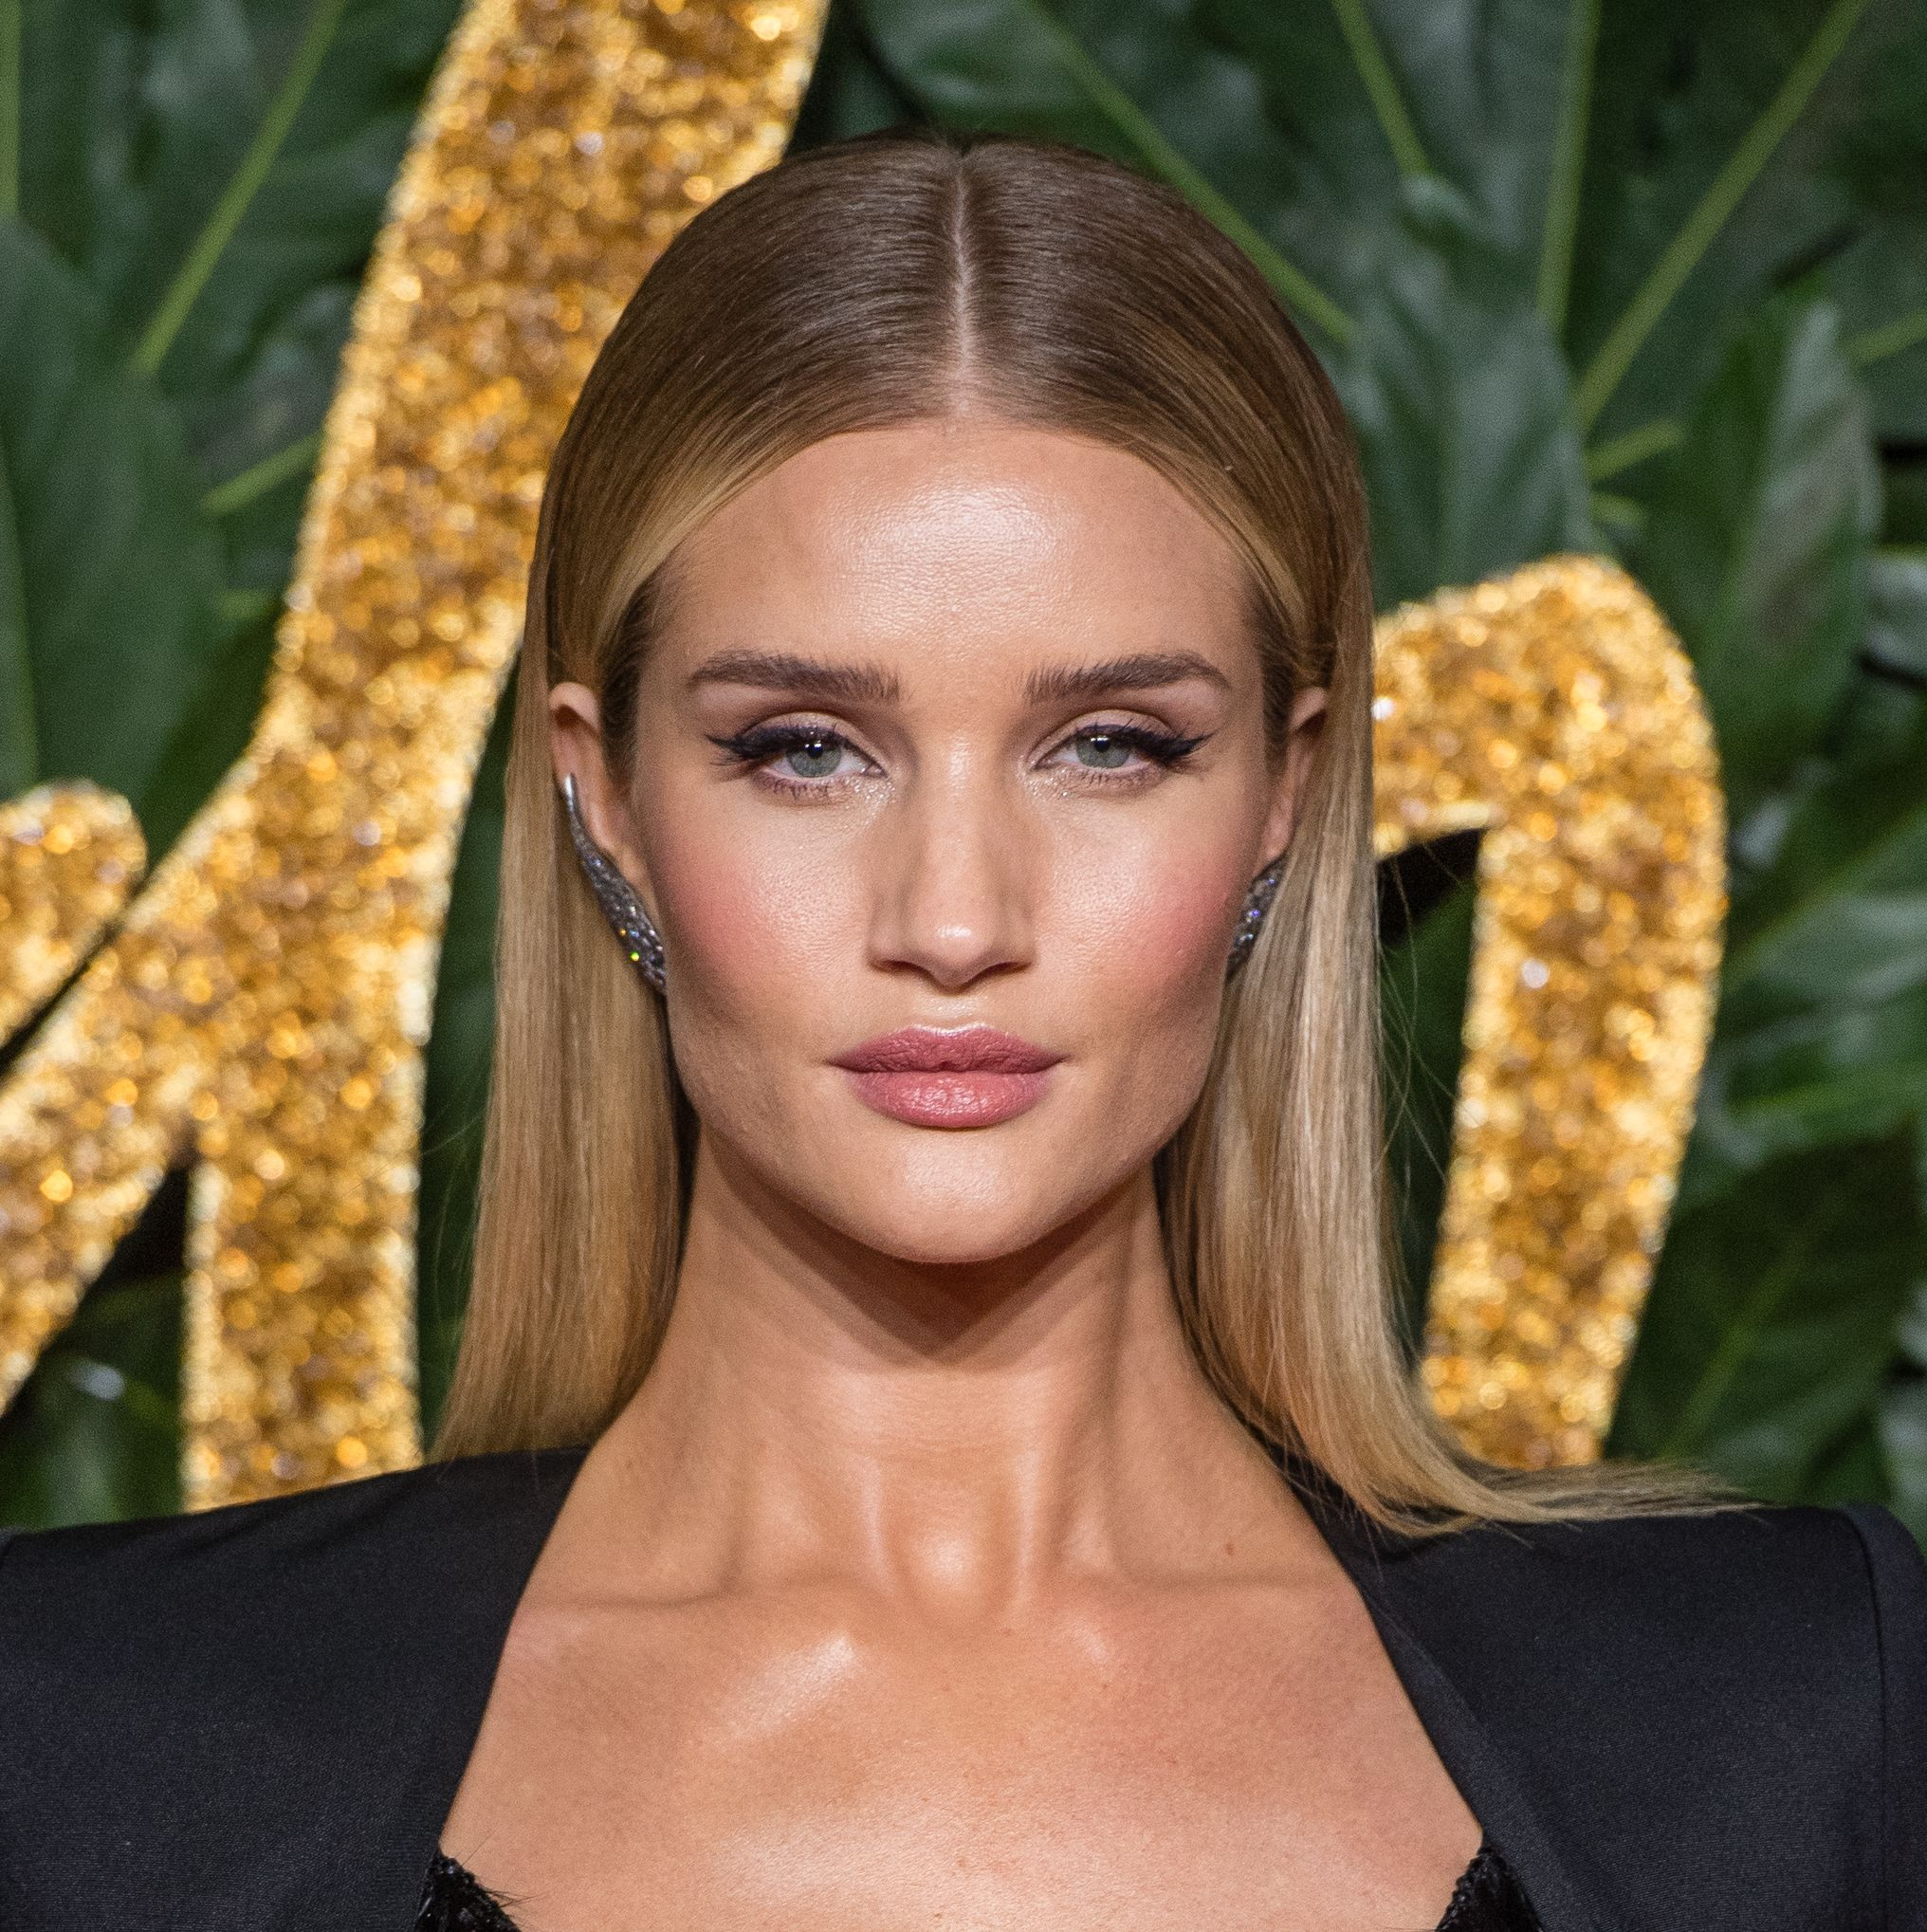 Rosie Huntington-Whiteley Cut Out These Foods In A Bid To Get Rid Of Her Acne